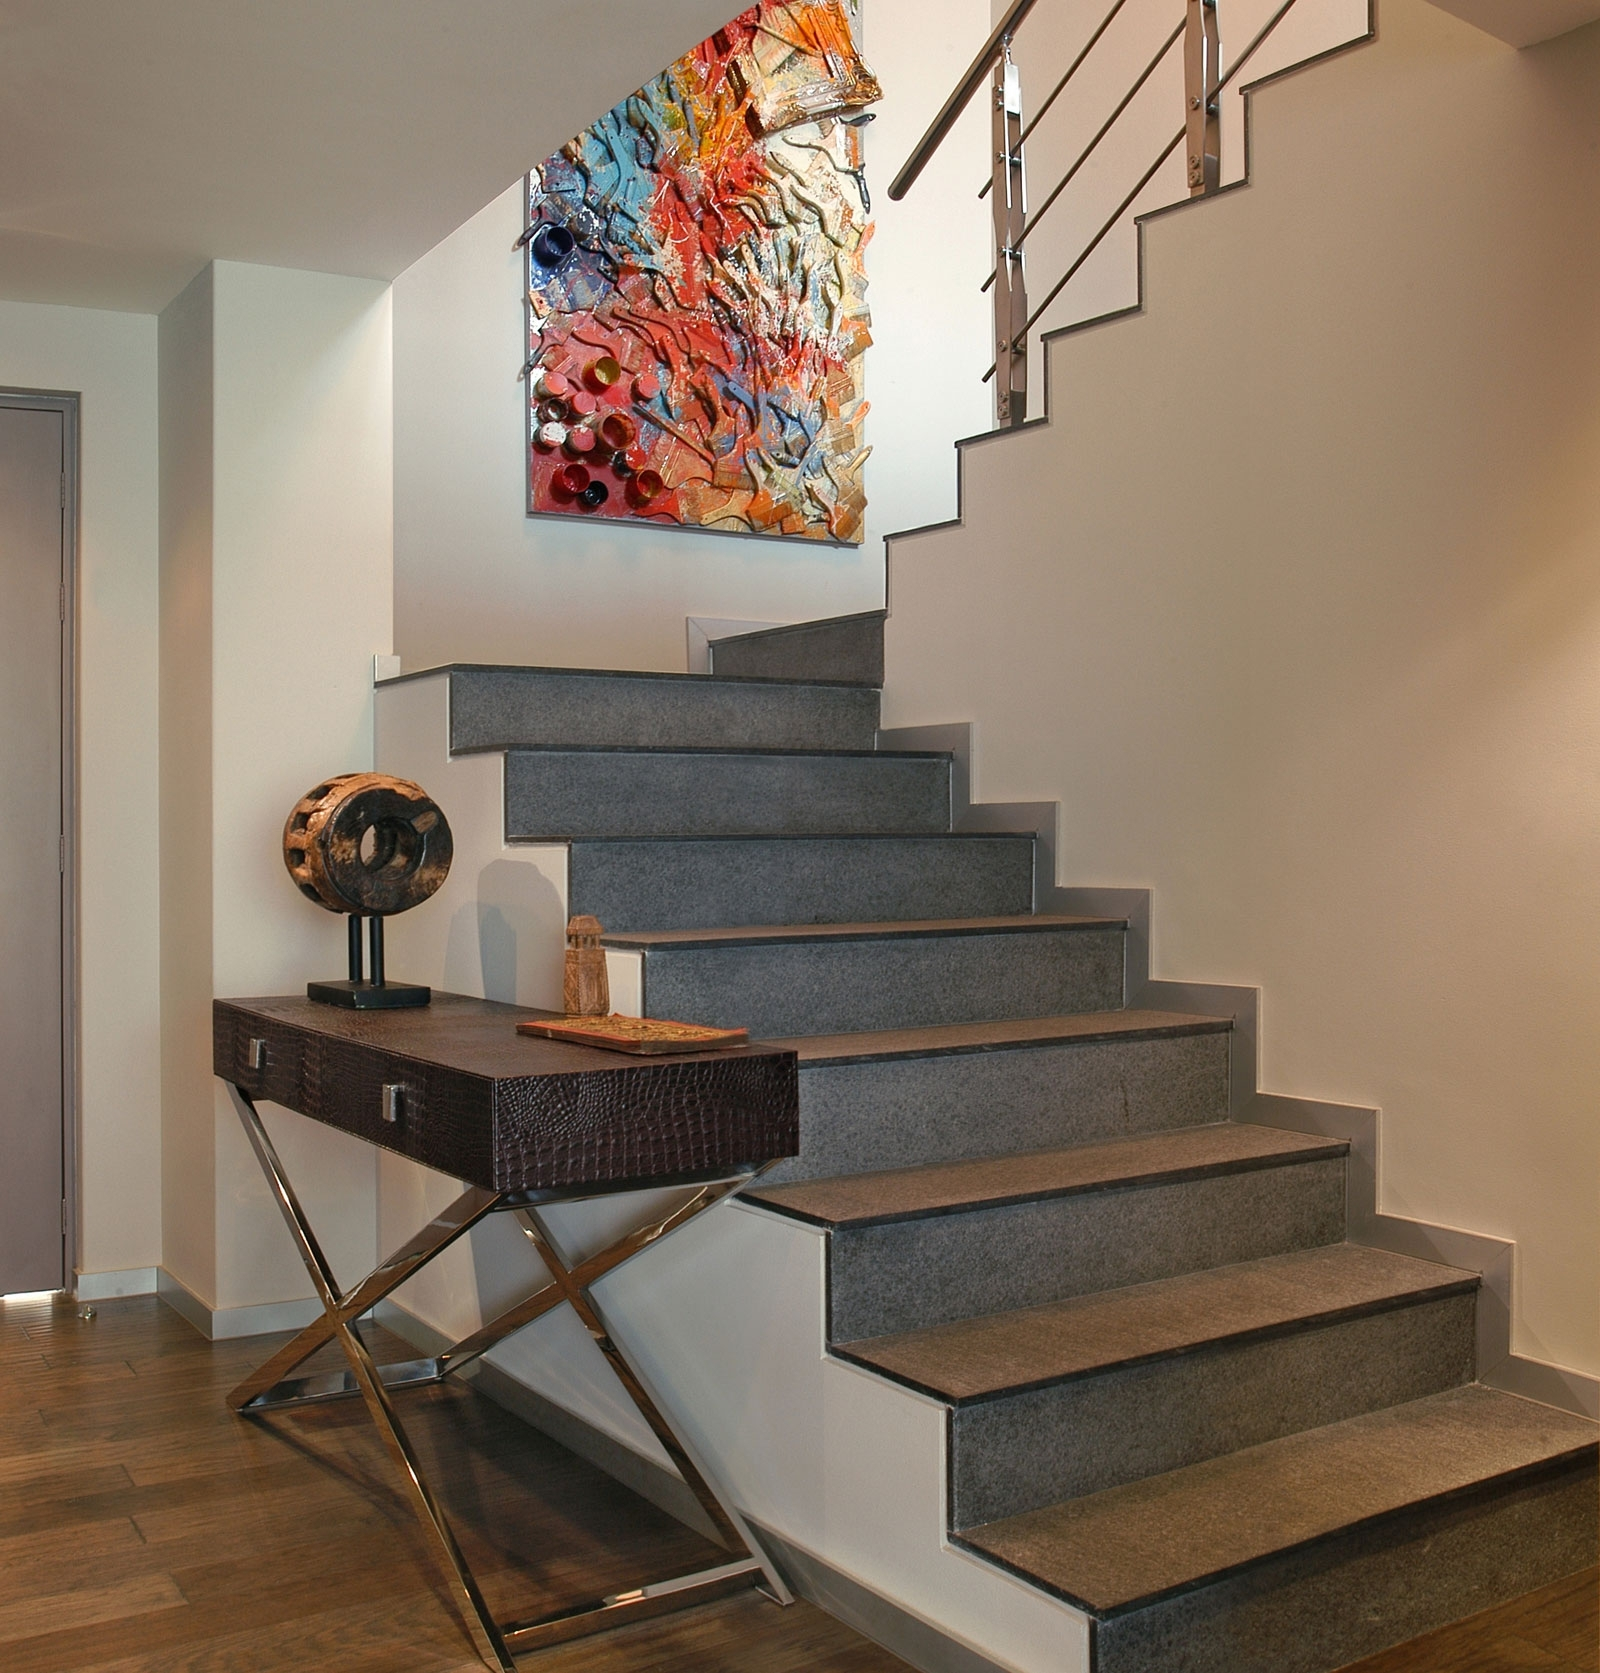 Home Decor & Furniture With Regard To Preferred Staircase Wall Accents (Gallery 4 of 15)